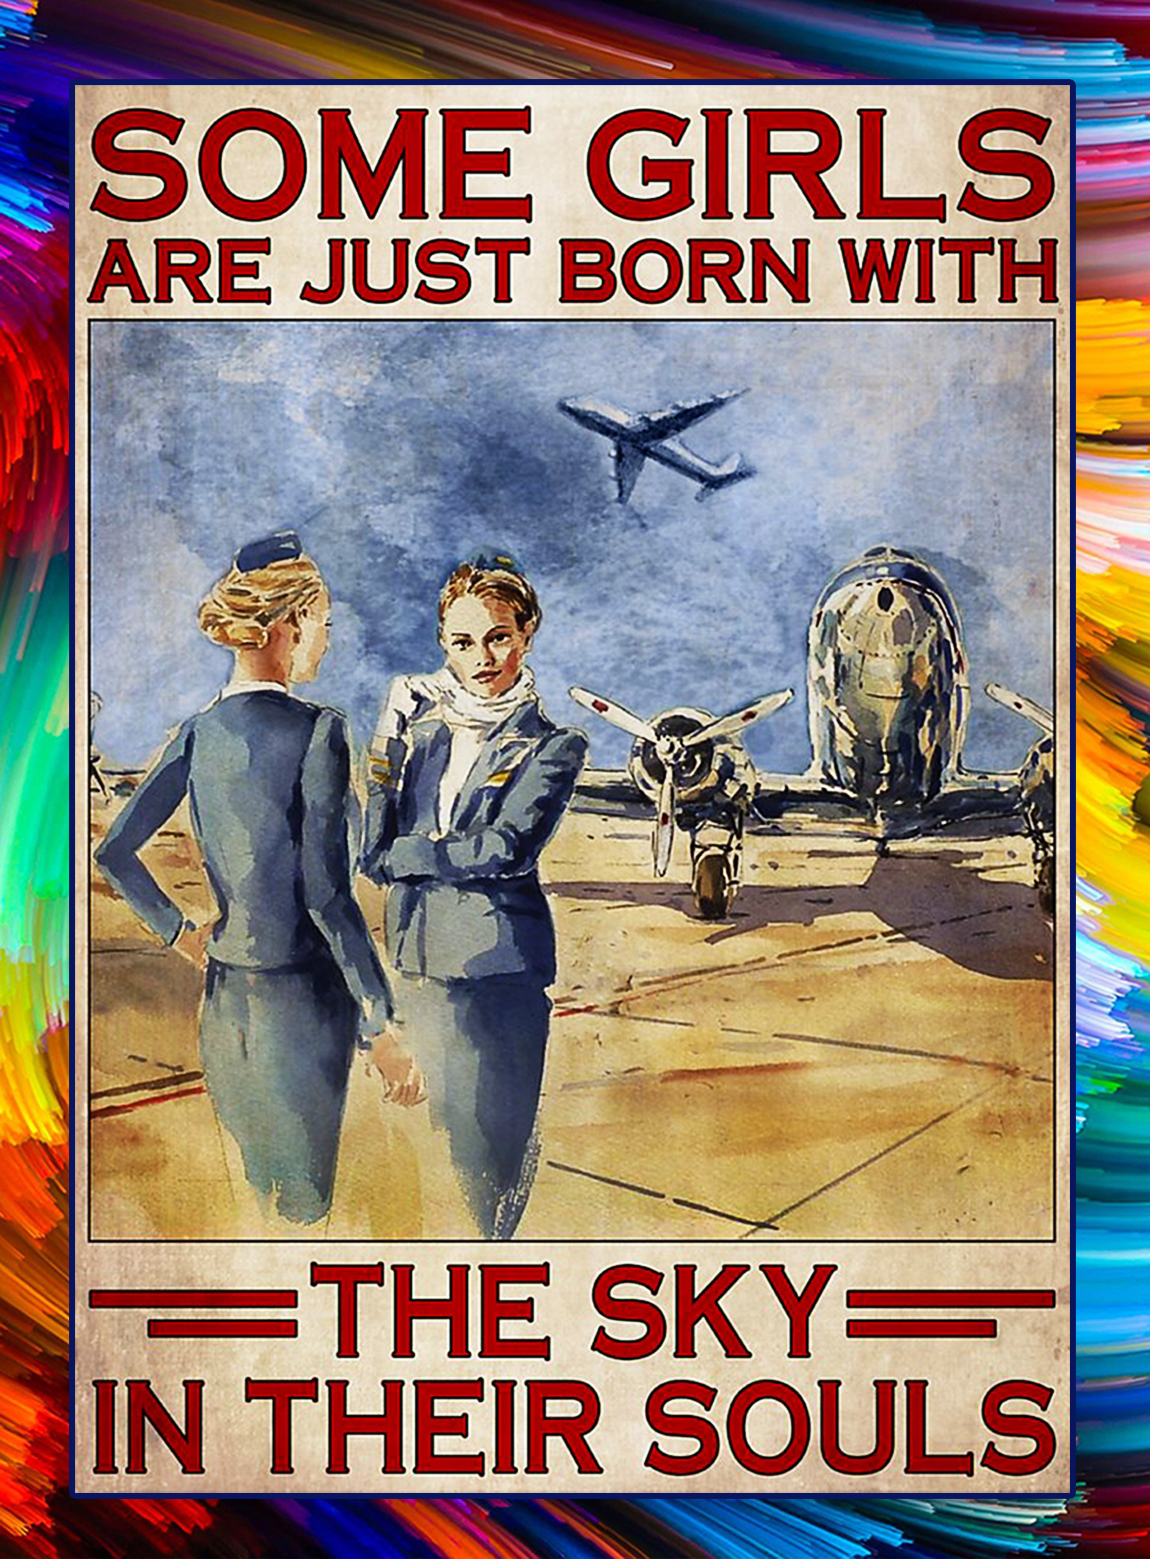 Flight attendant Some girls are just born with the sky in their souls poster - A3